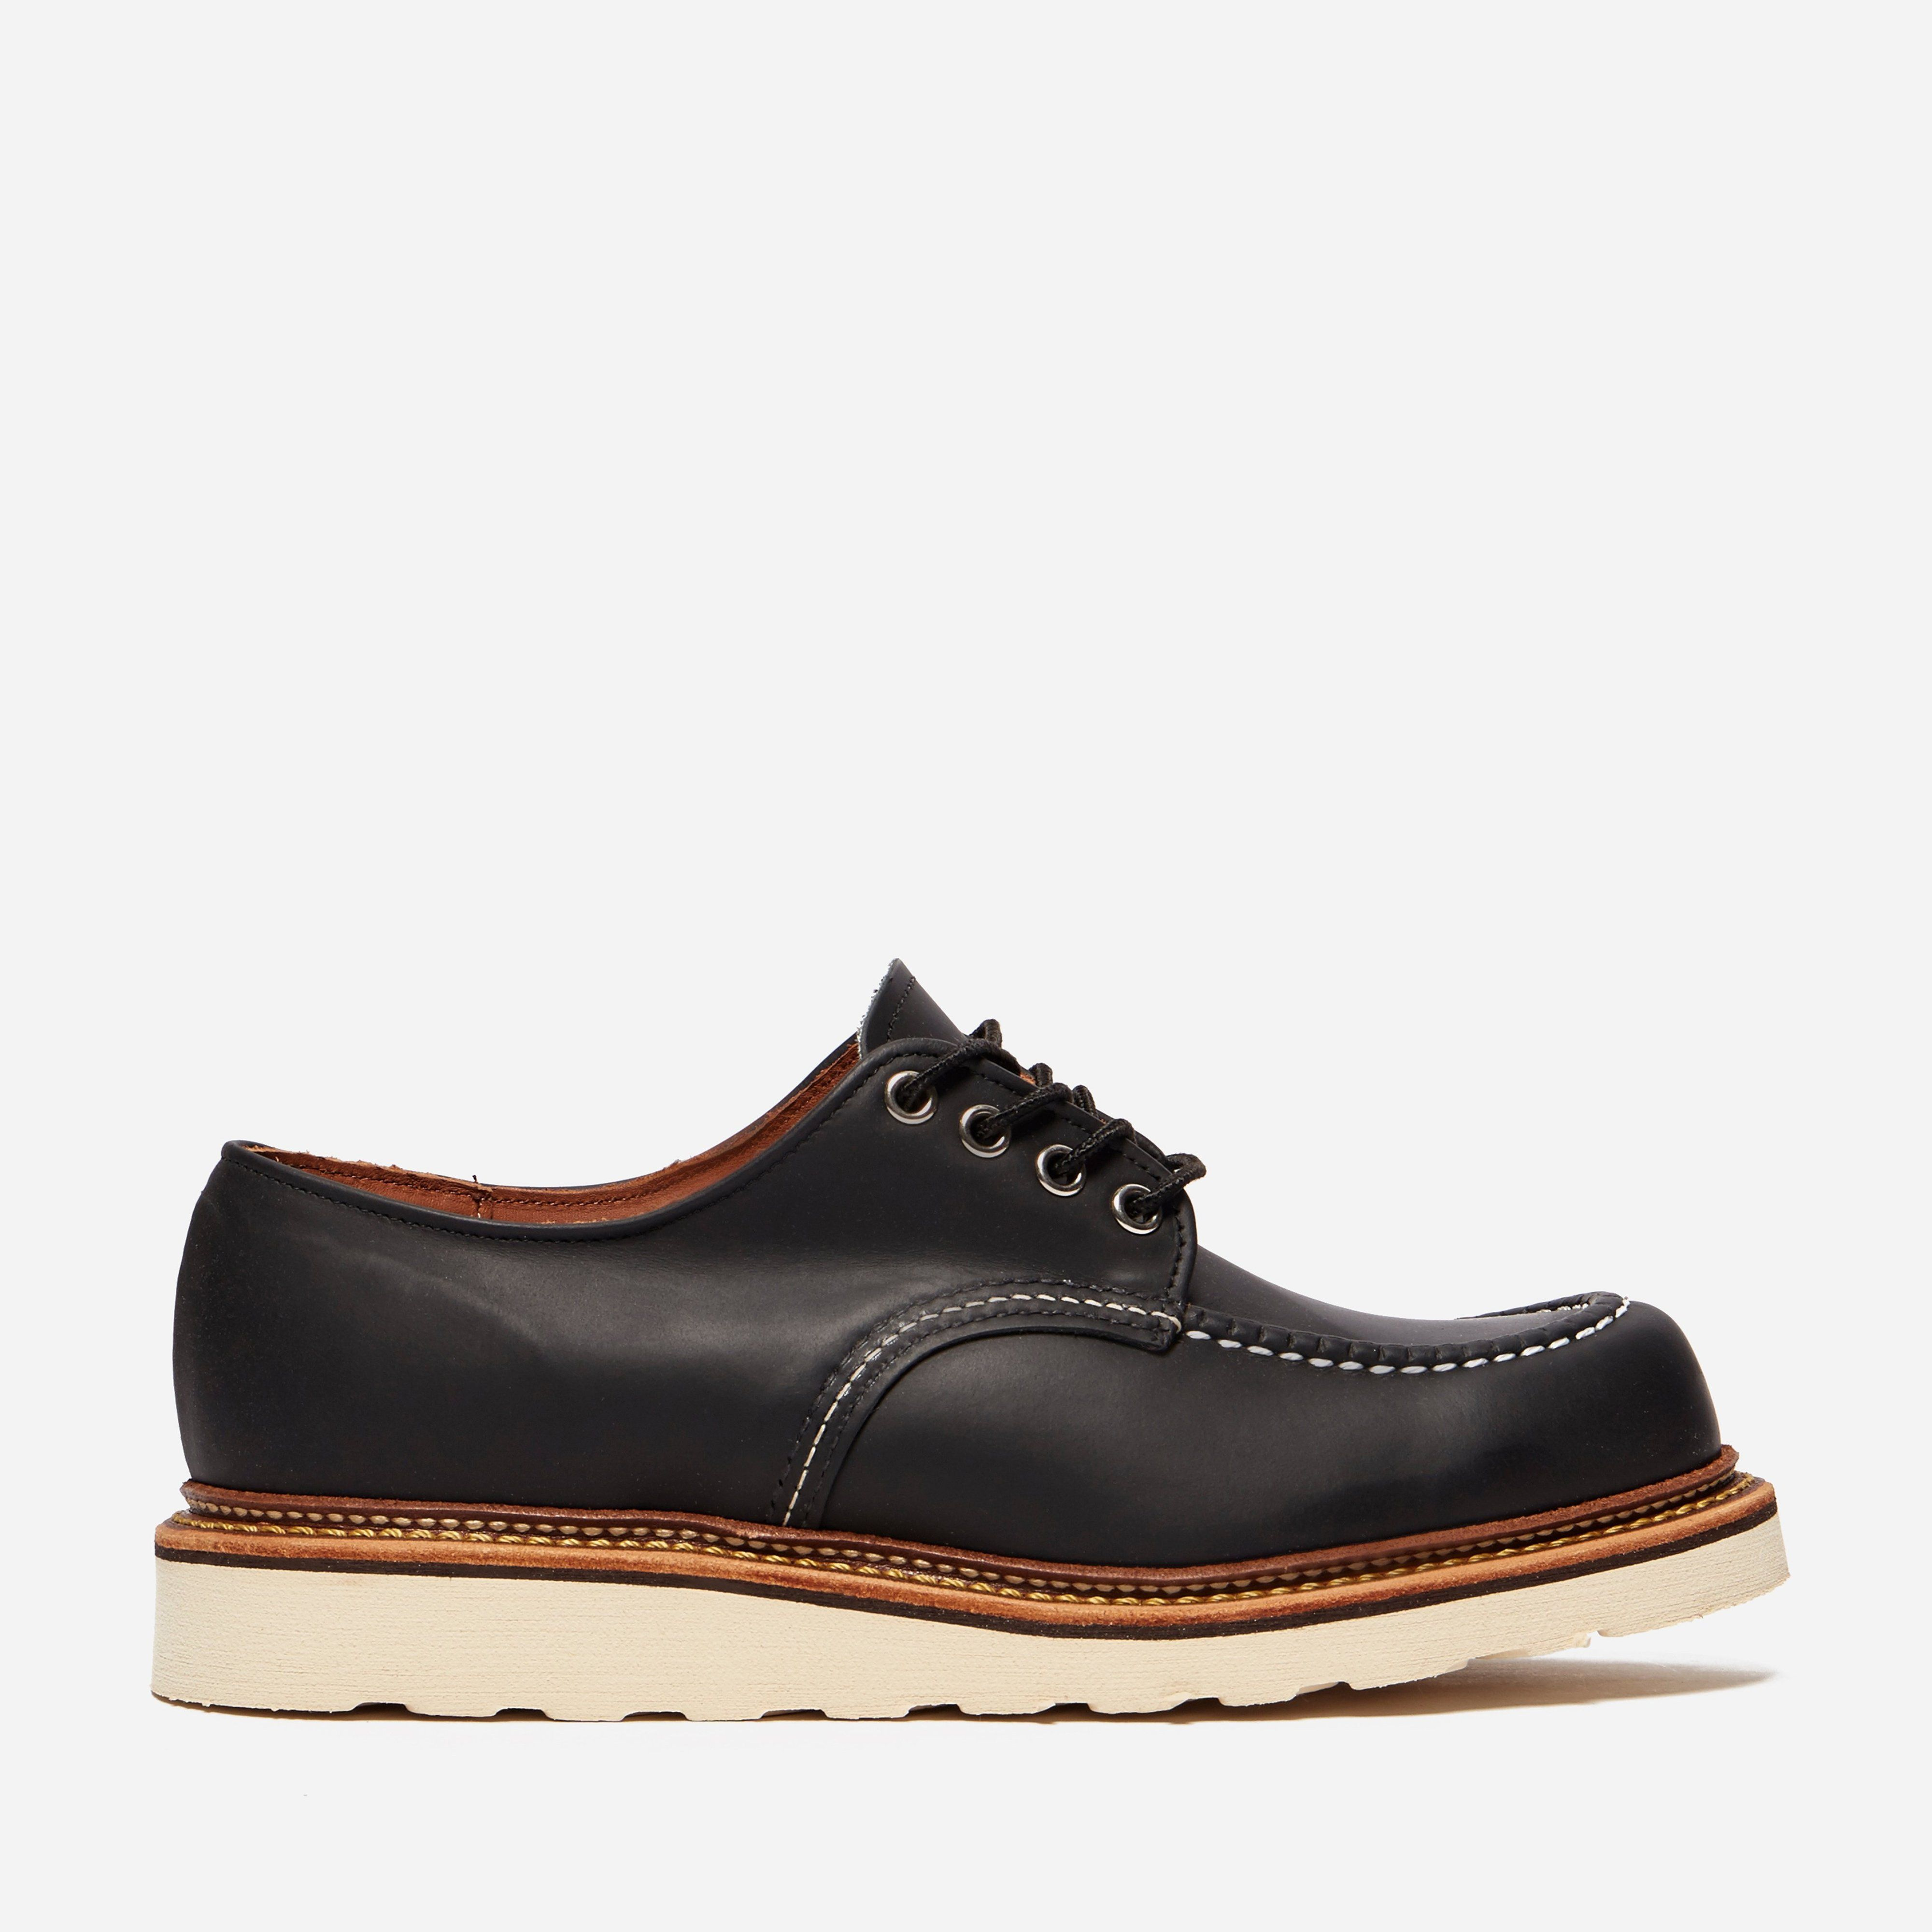 Red Wing 8106 Work Oxford Shoe